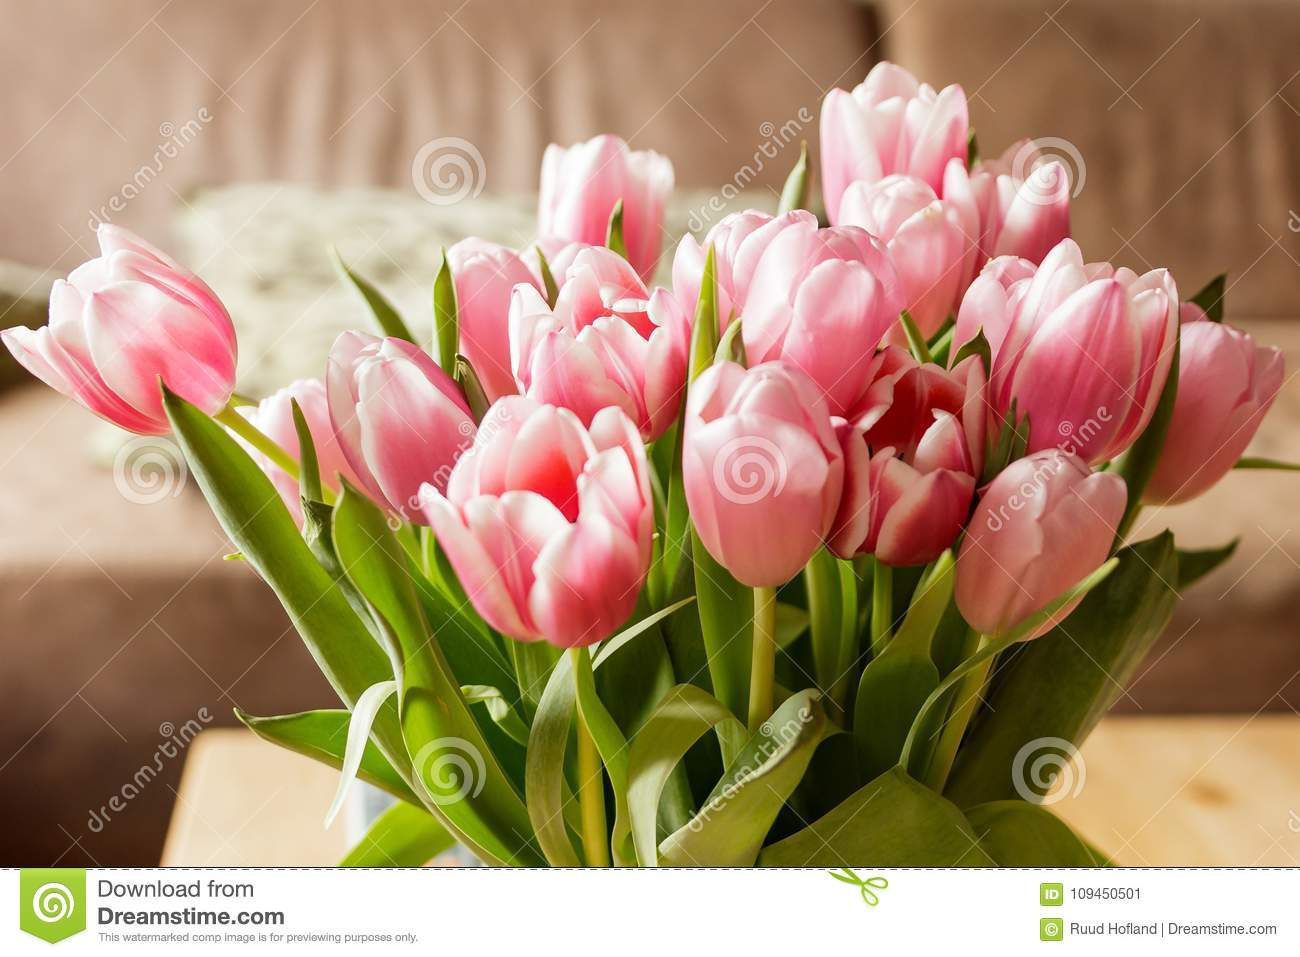 Tulips from holland valentine tulips stock image image of harz download tulips from holland valentine tulips stock image image of harz mountains m4hsunfo